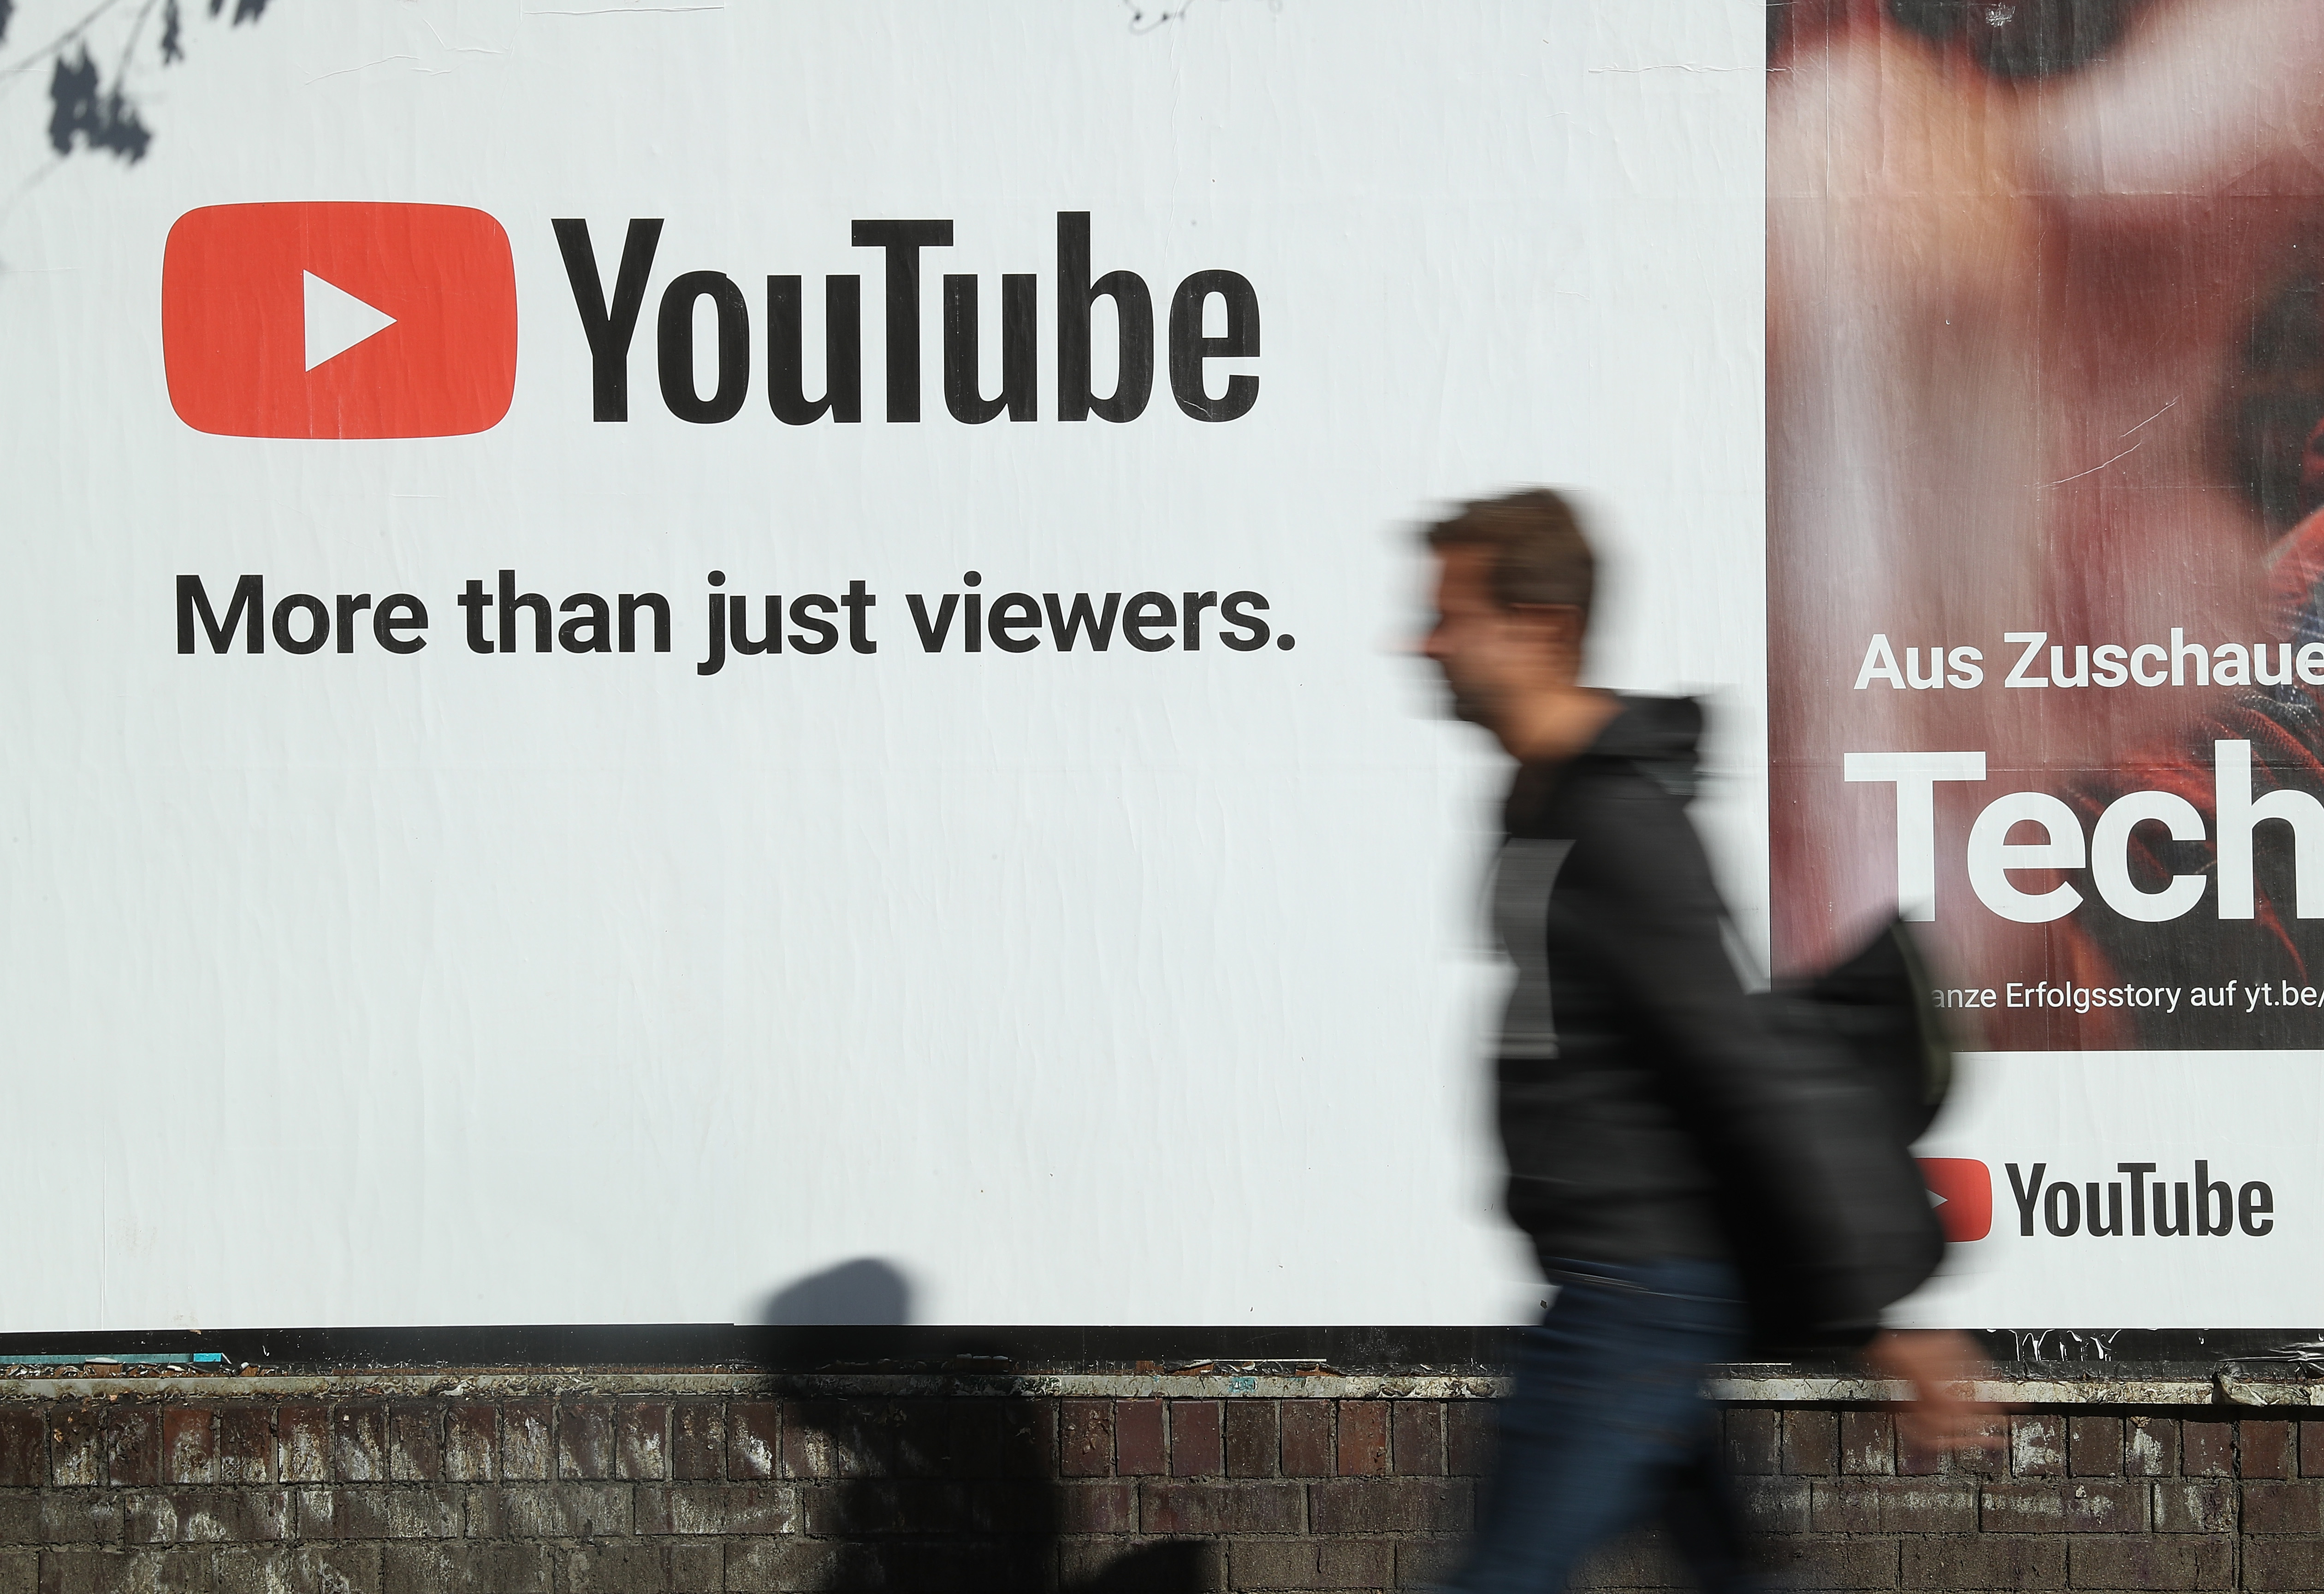 A man walks past a billboard advertisement for YouTube in Berlin, Germany. on on Oct. 5, 2018.